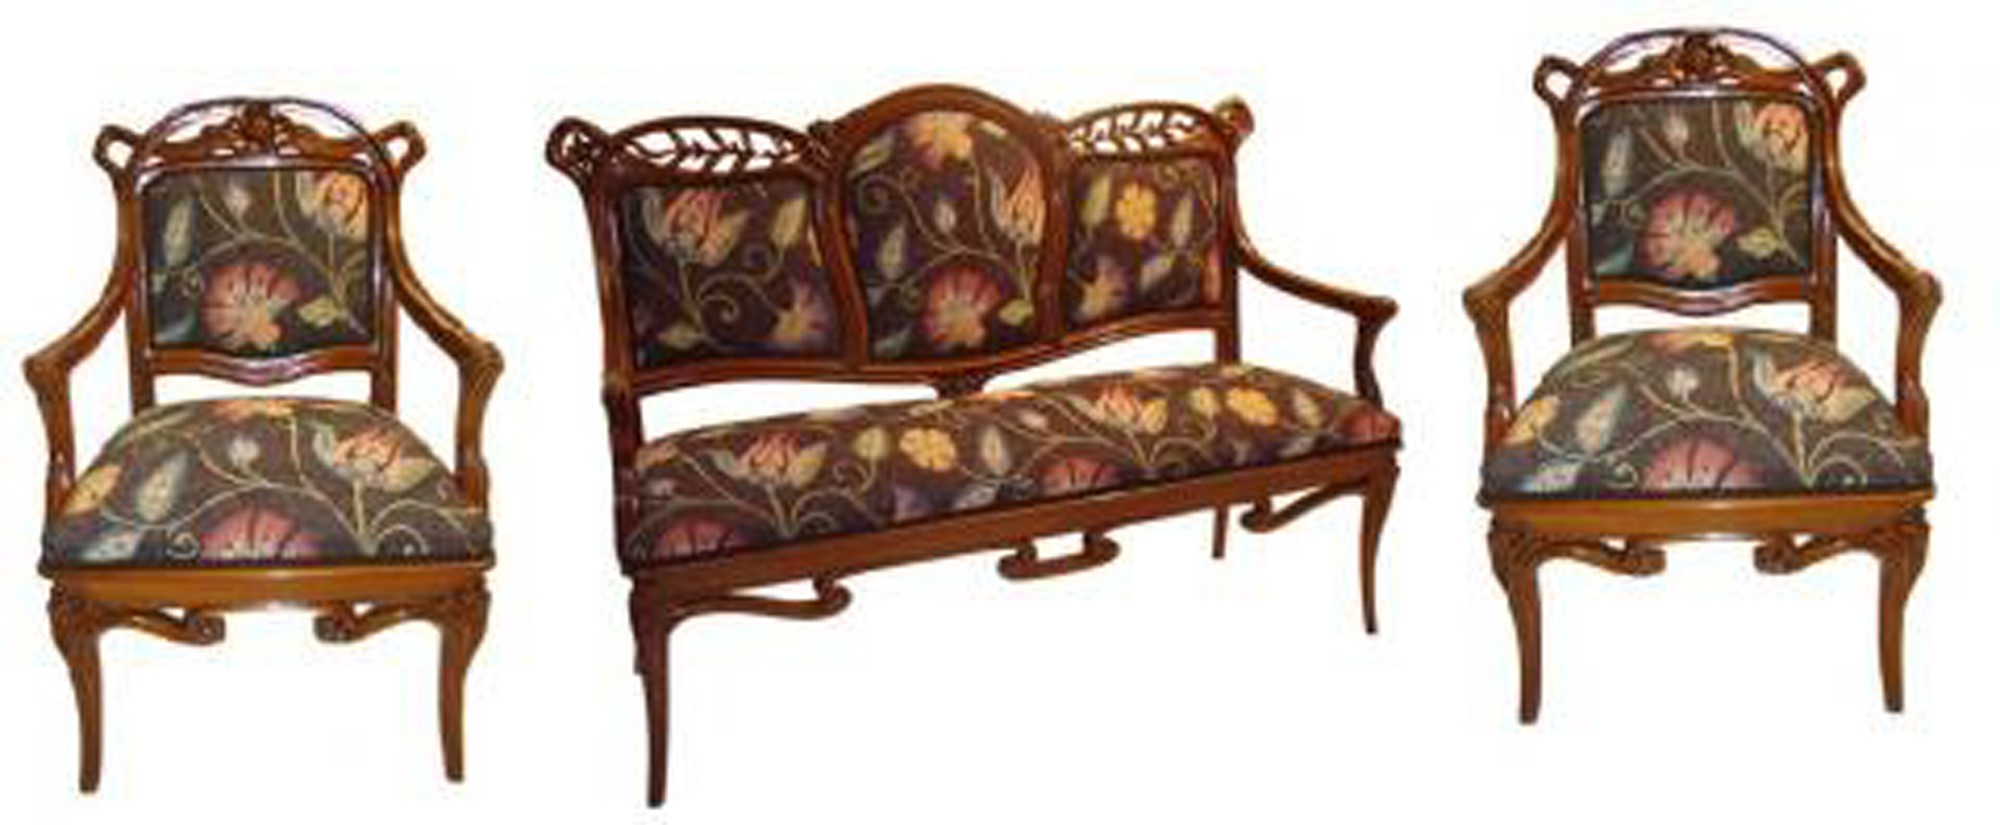 Art Nouveau Parlor Set Two Armchairs And Settee Modernism